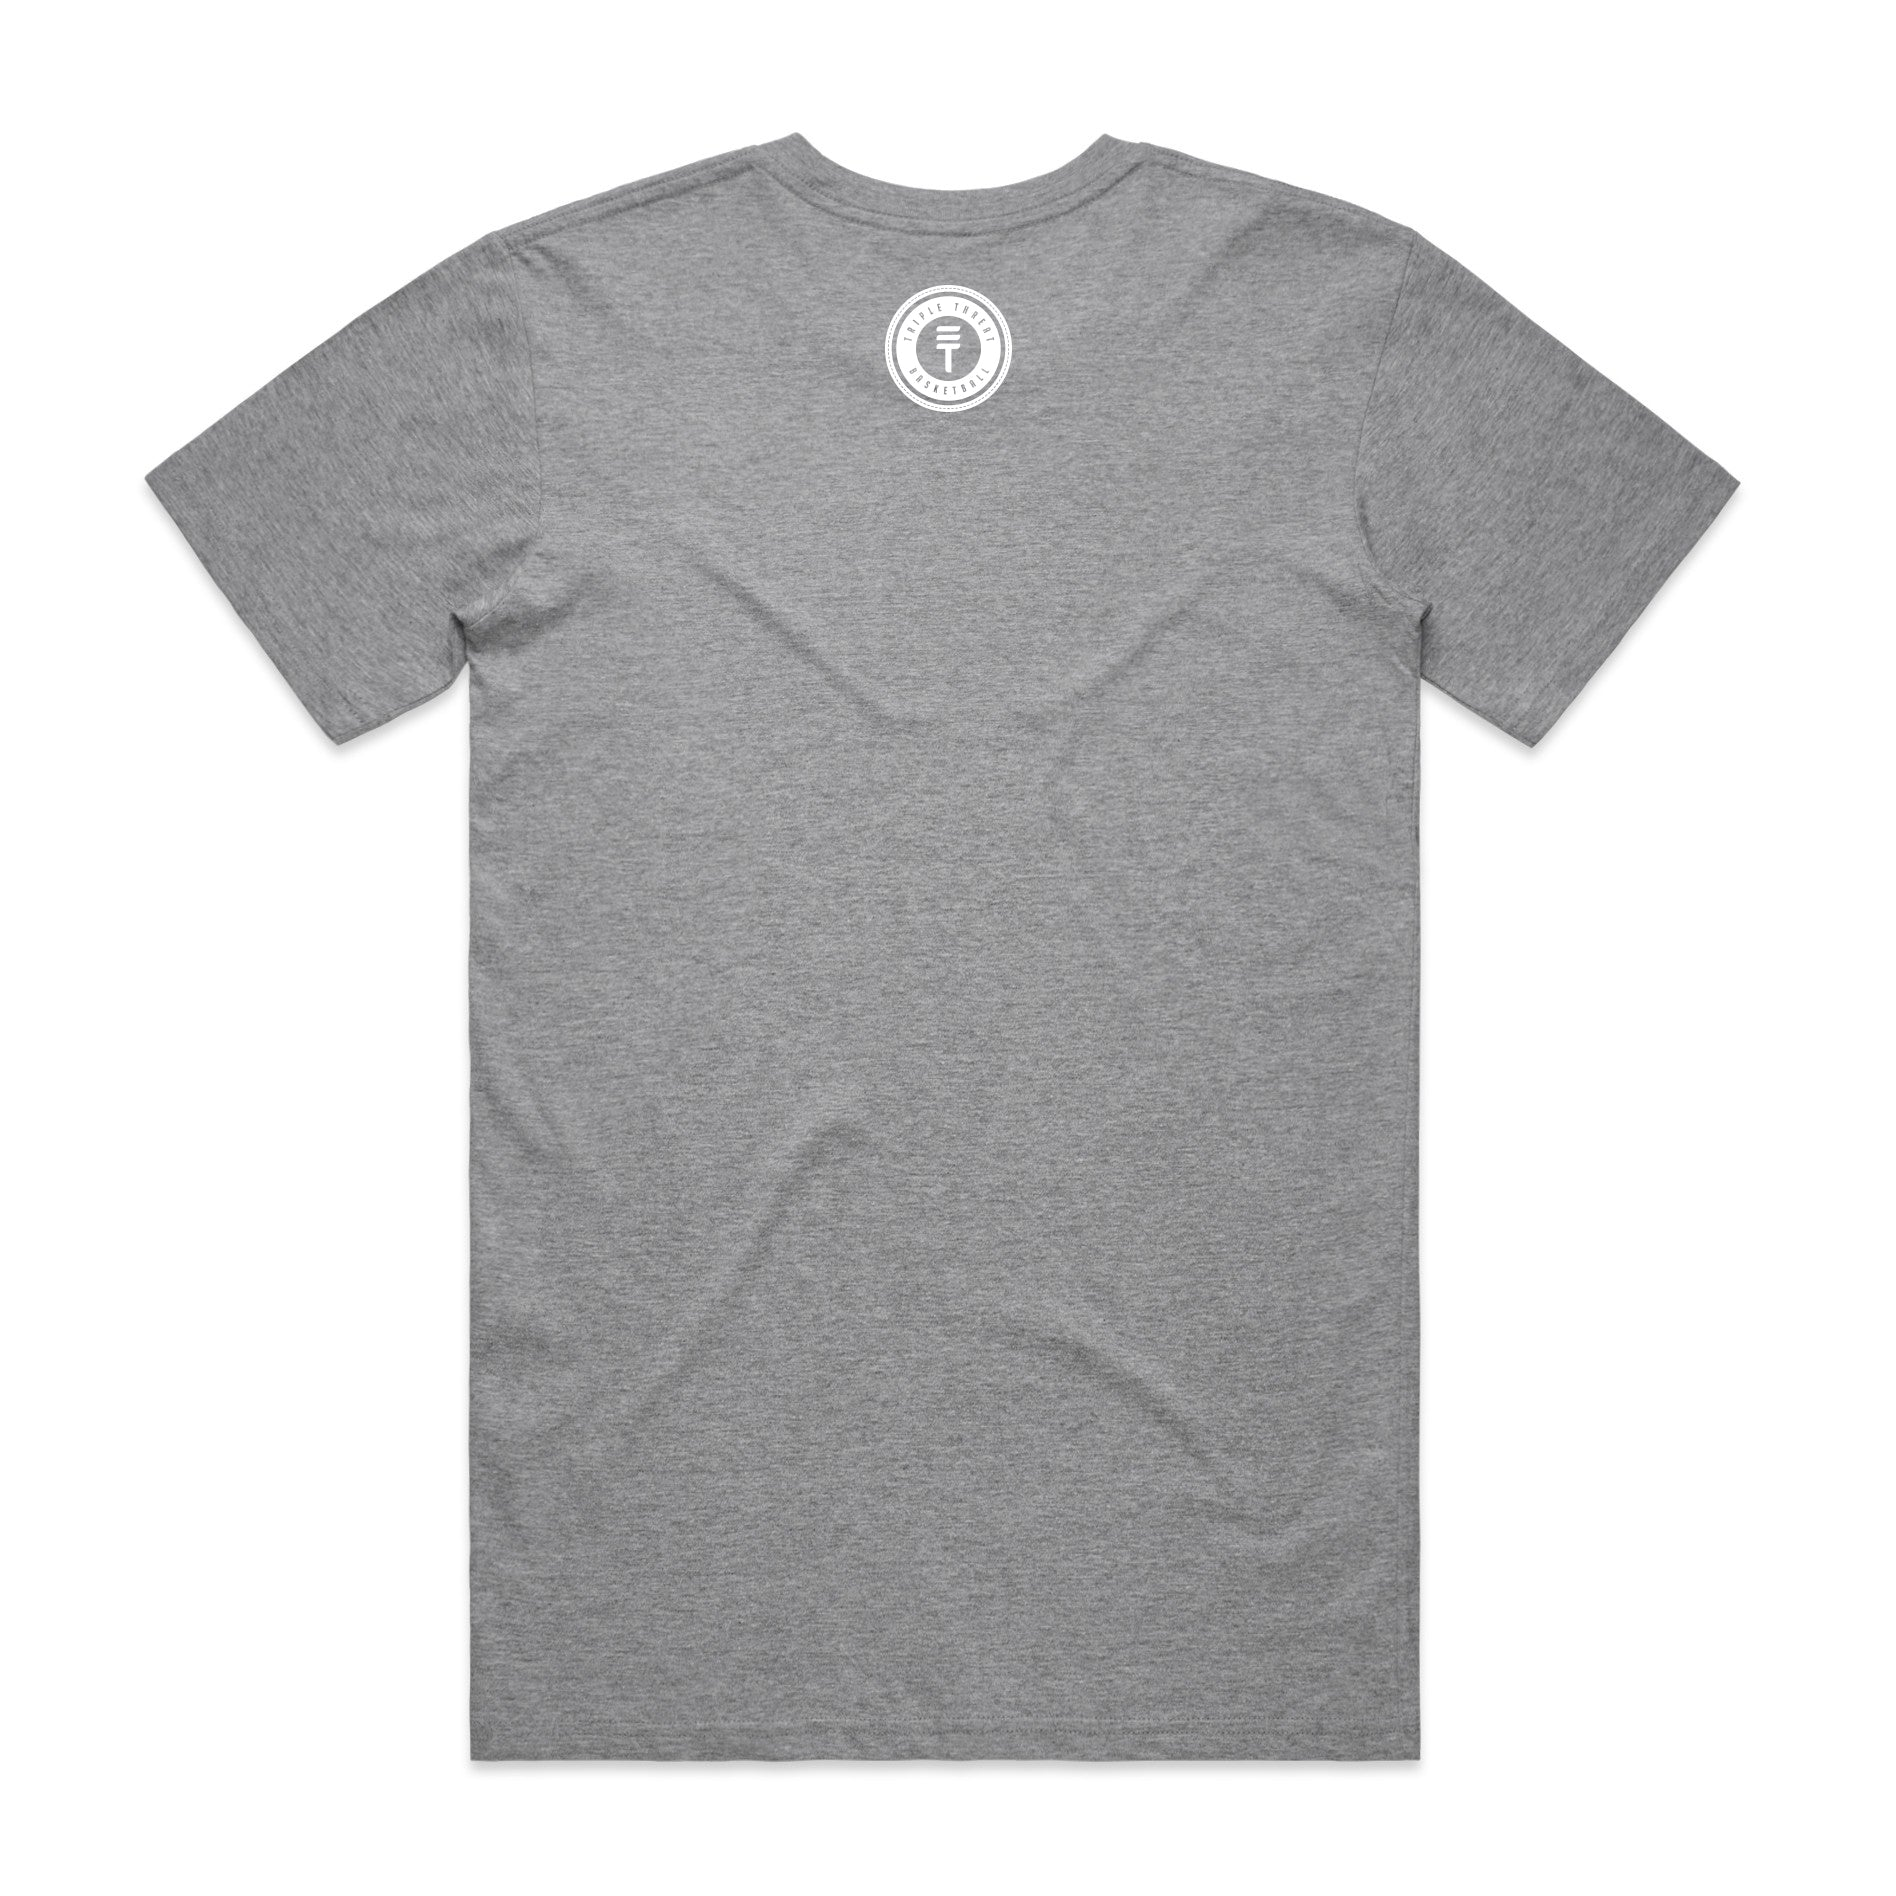 DOTTED T-SHIRT - GREY